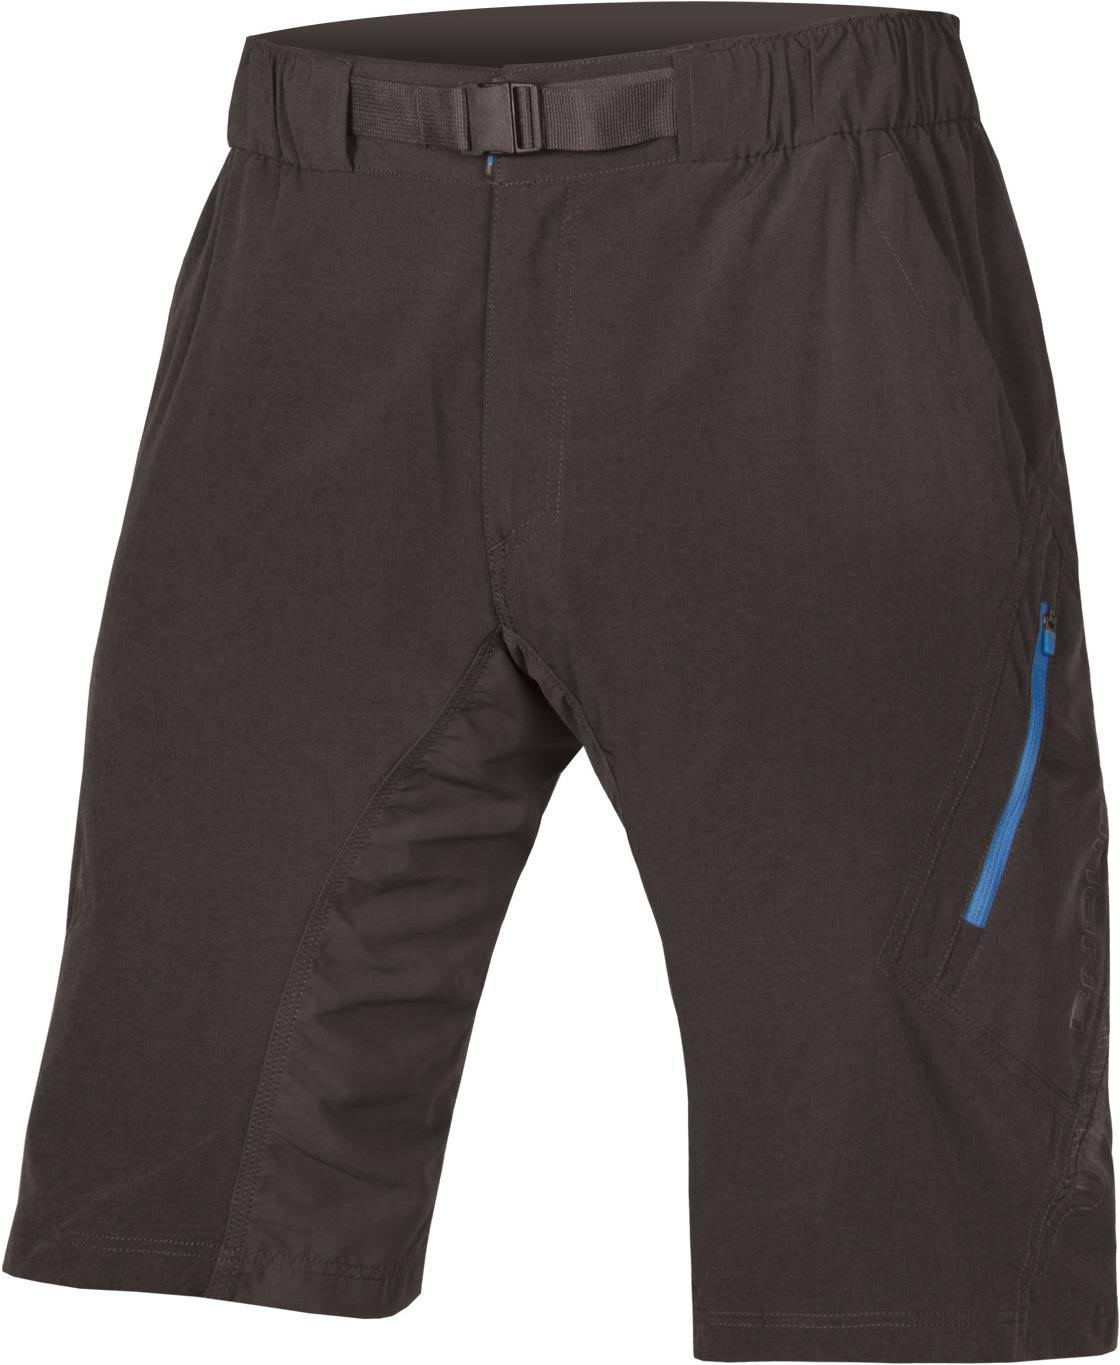 Endura Hummvee Lite Short II - Gray